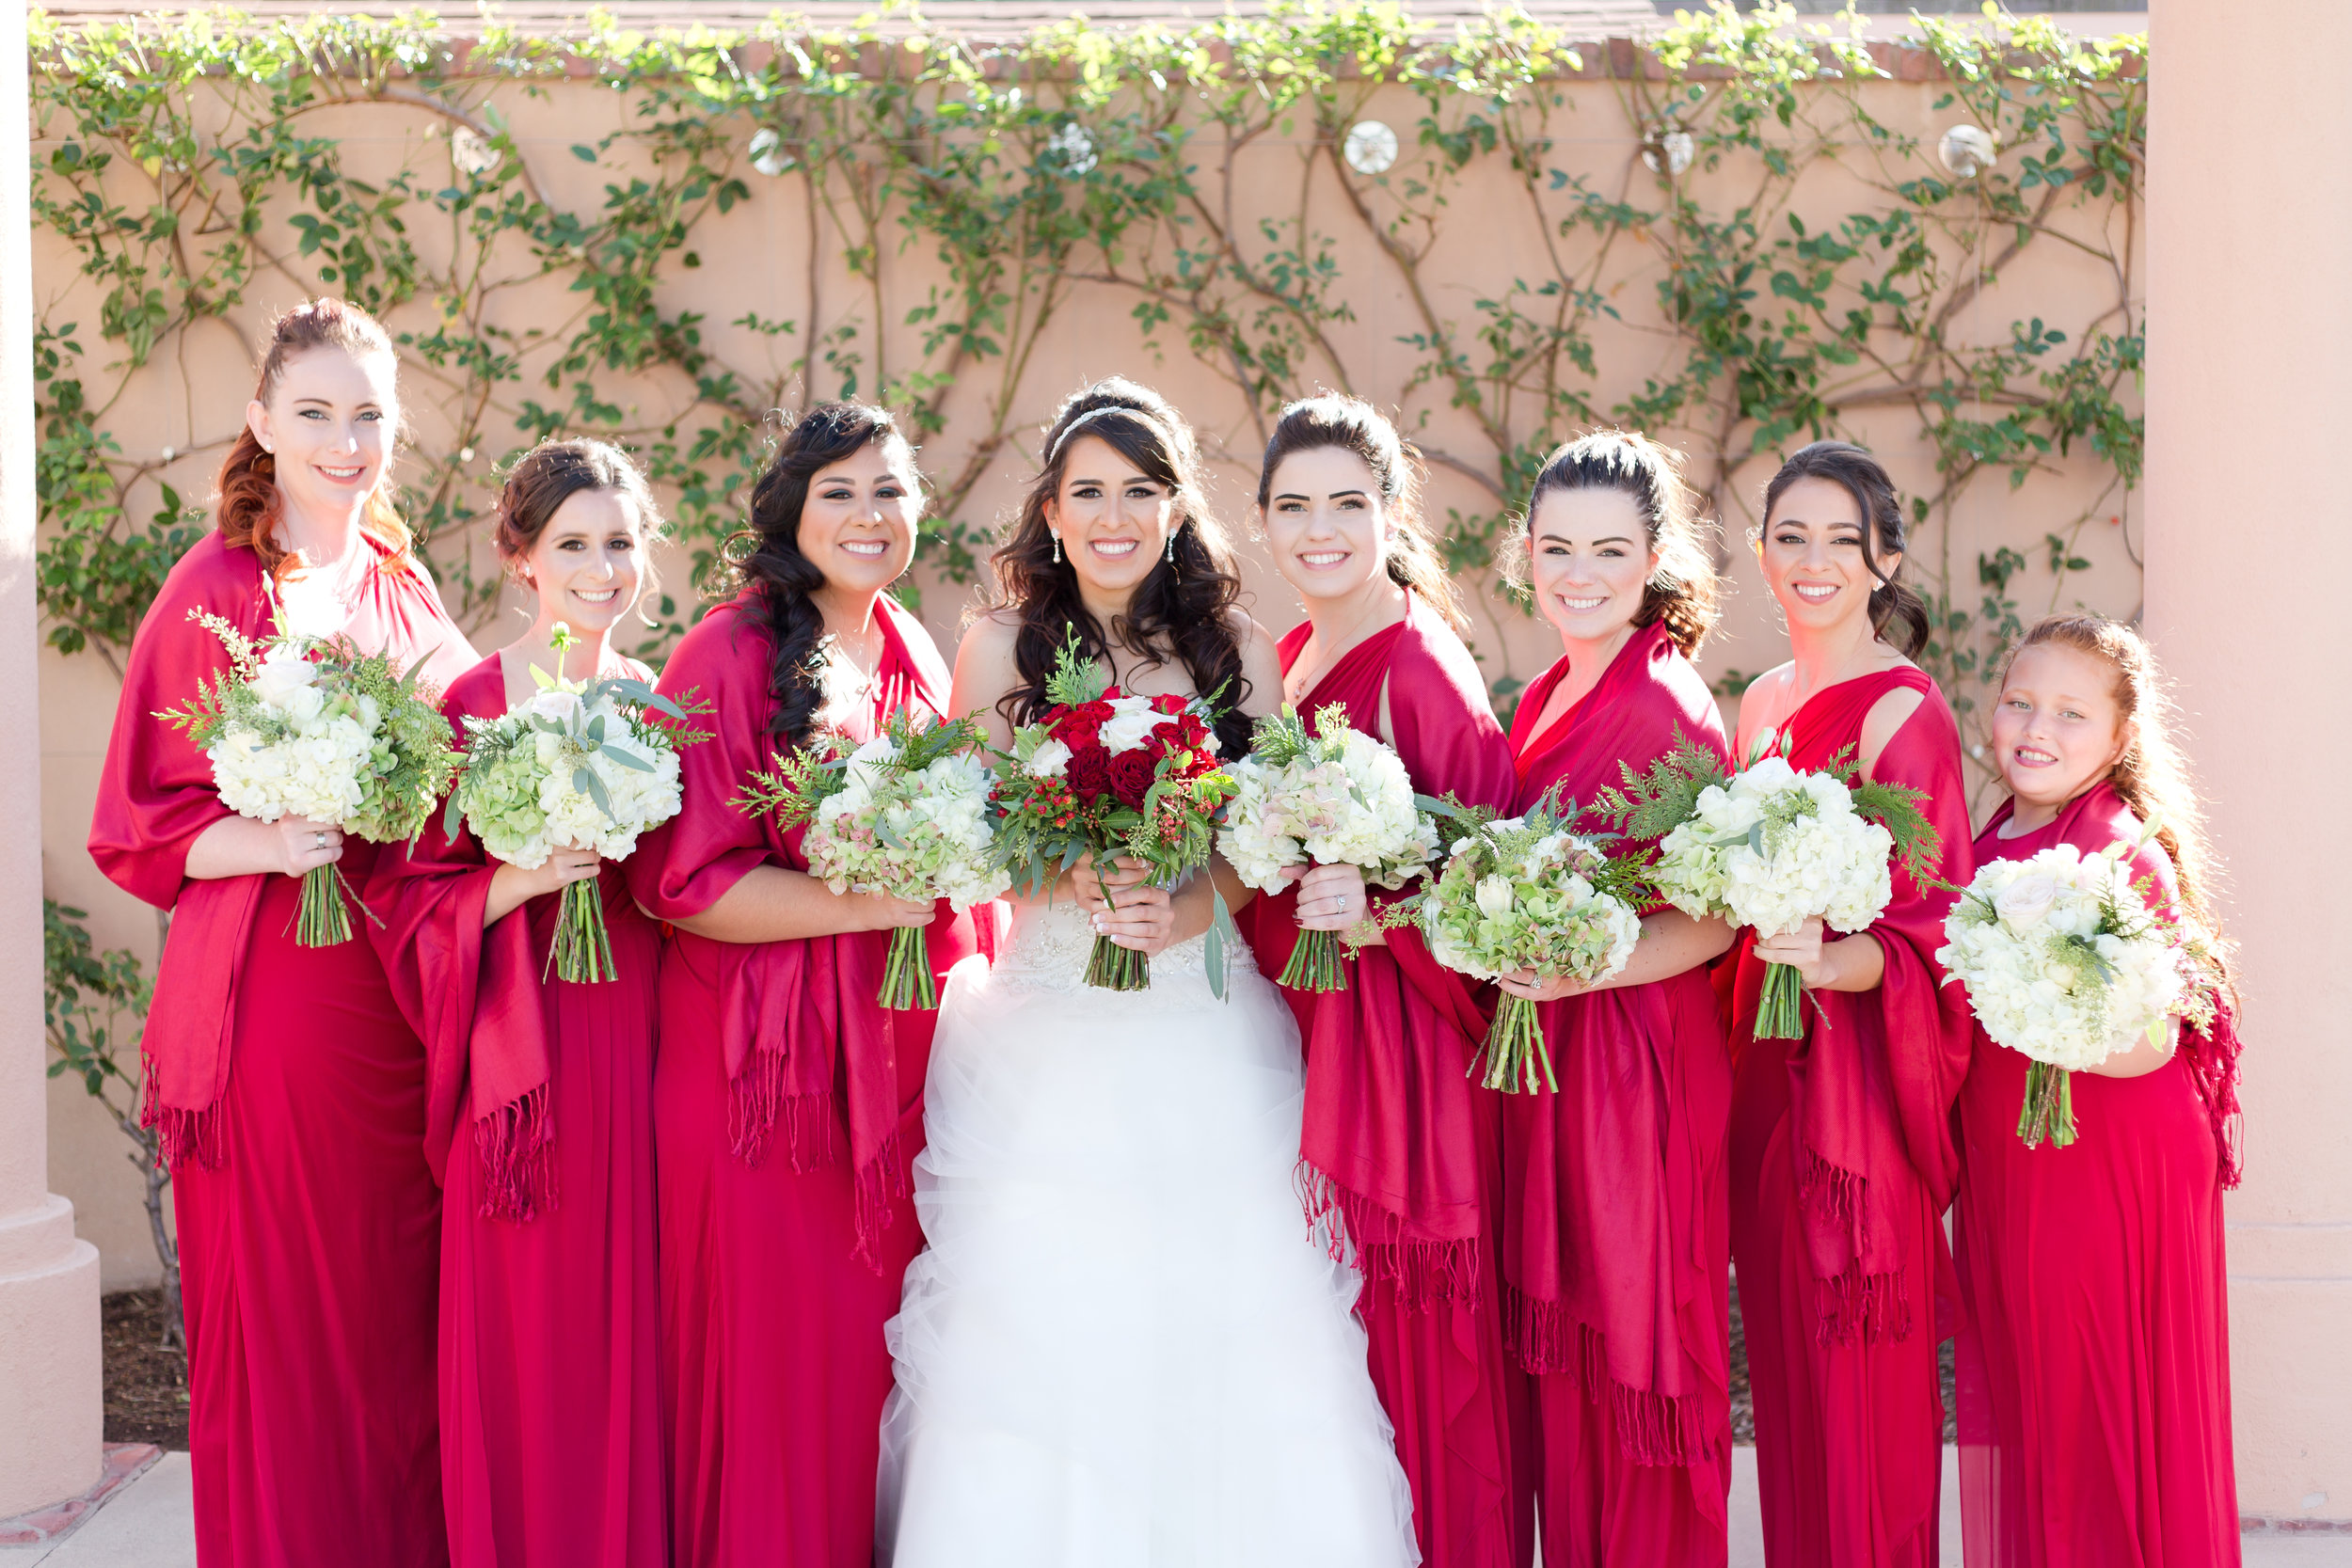 MarbleWedding_BridalParty_JLP-6.jpg